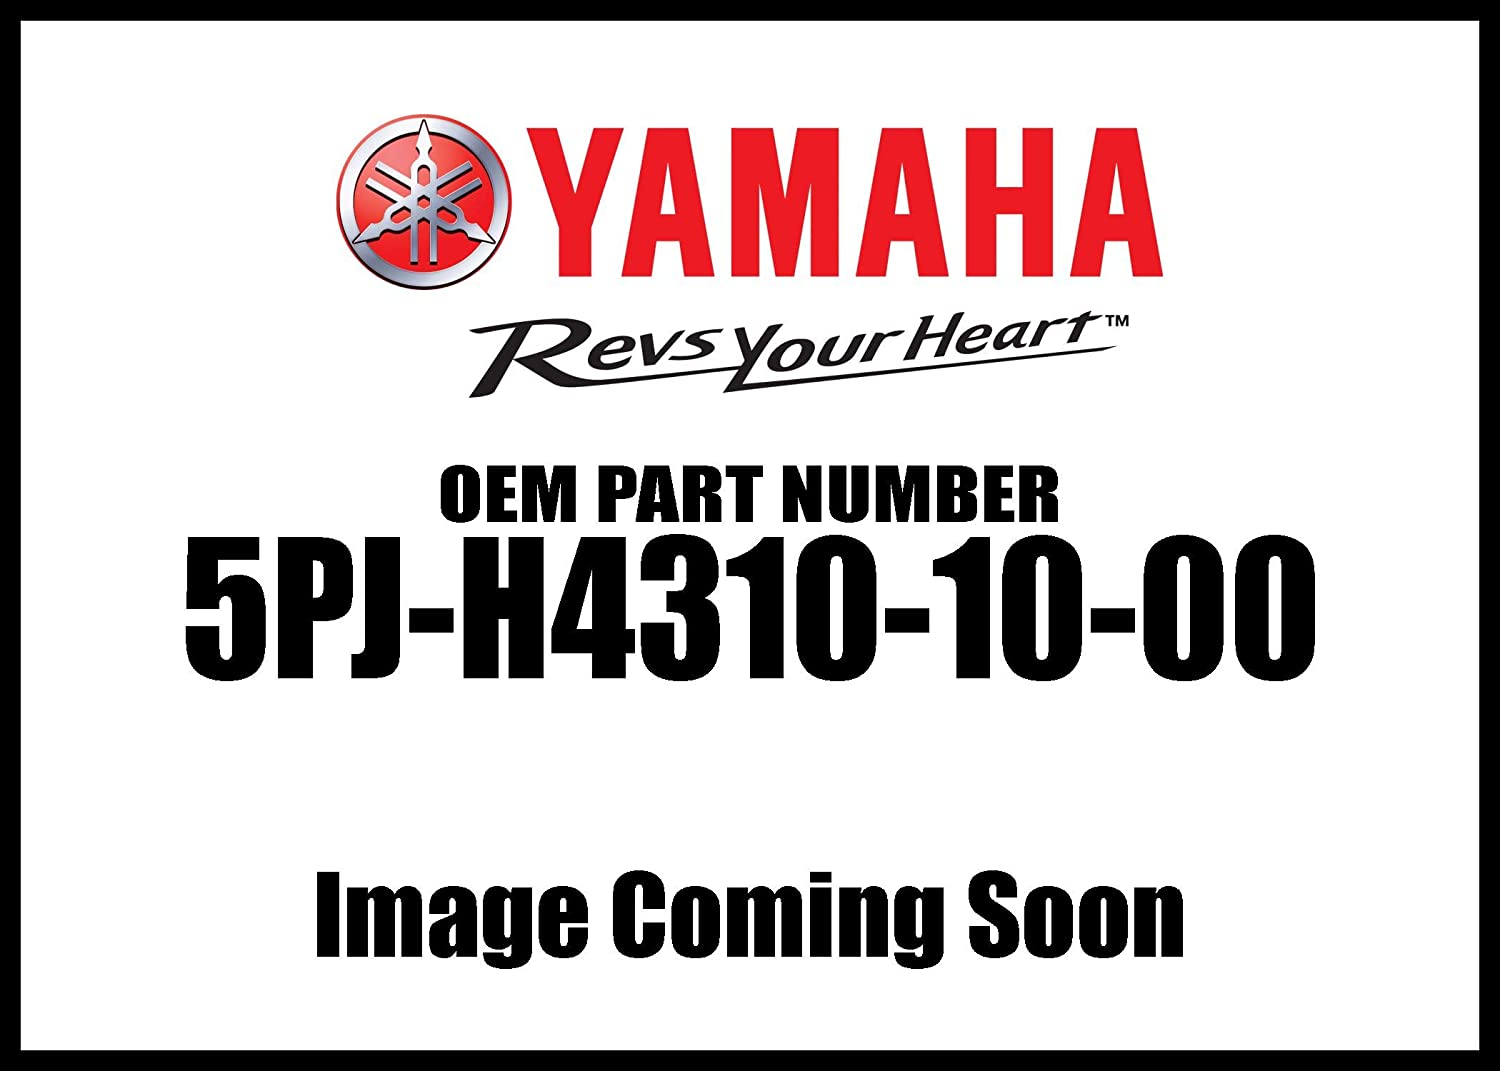 Yamaha 5PJ-H4310-10-00 Headlight Lens Assembly Lh; 5PJH43101000 Made by Yamaha